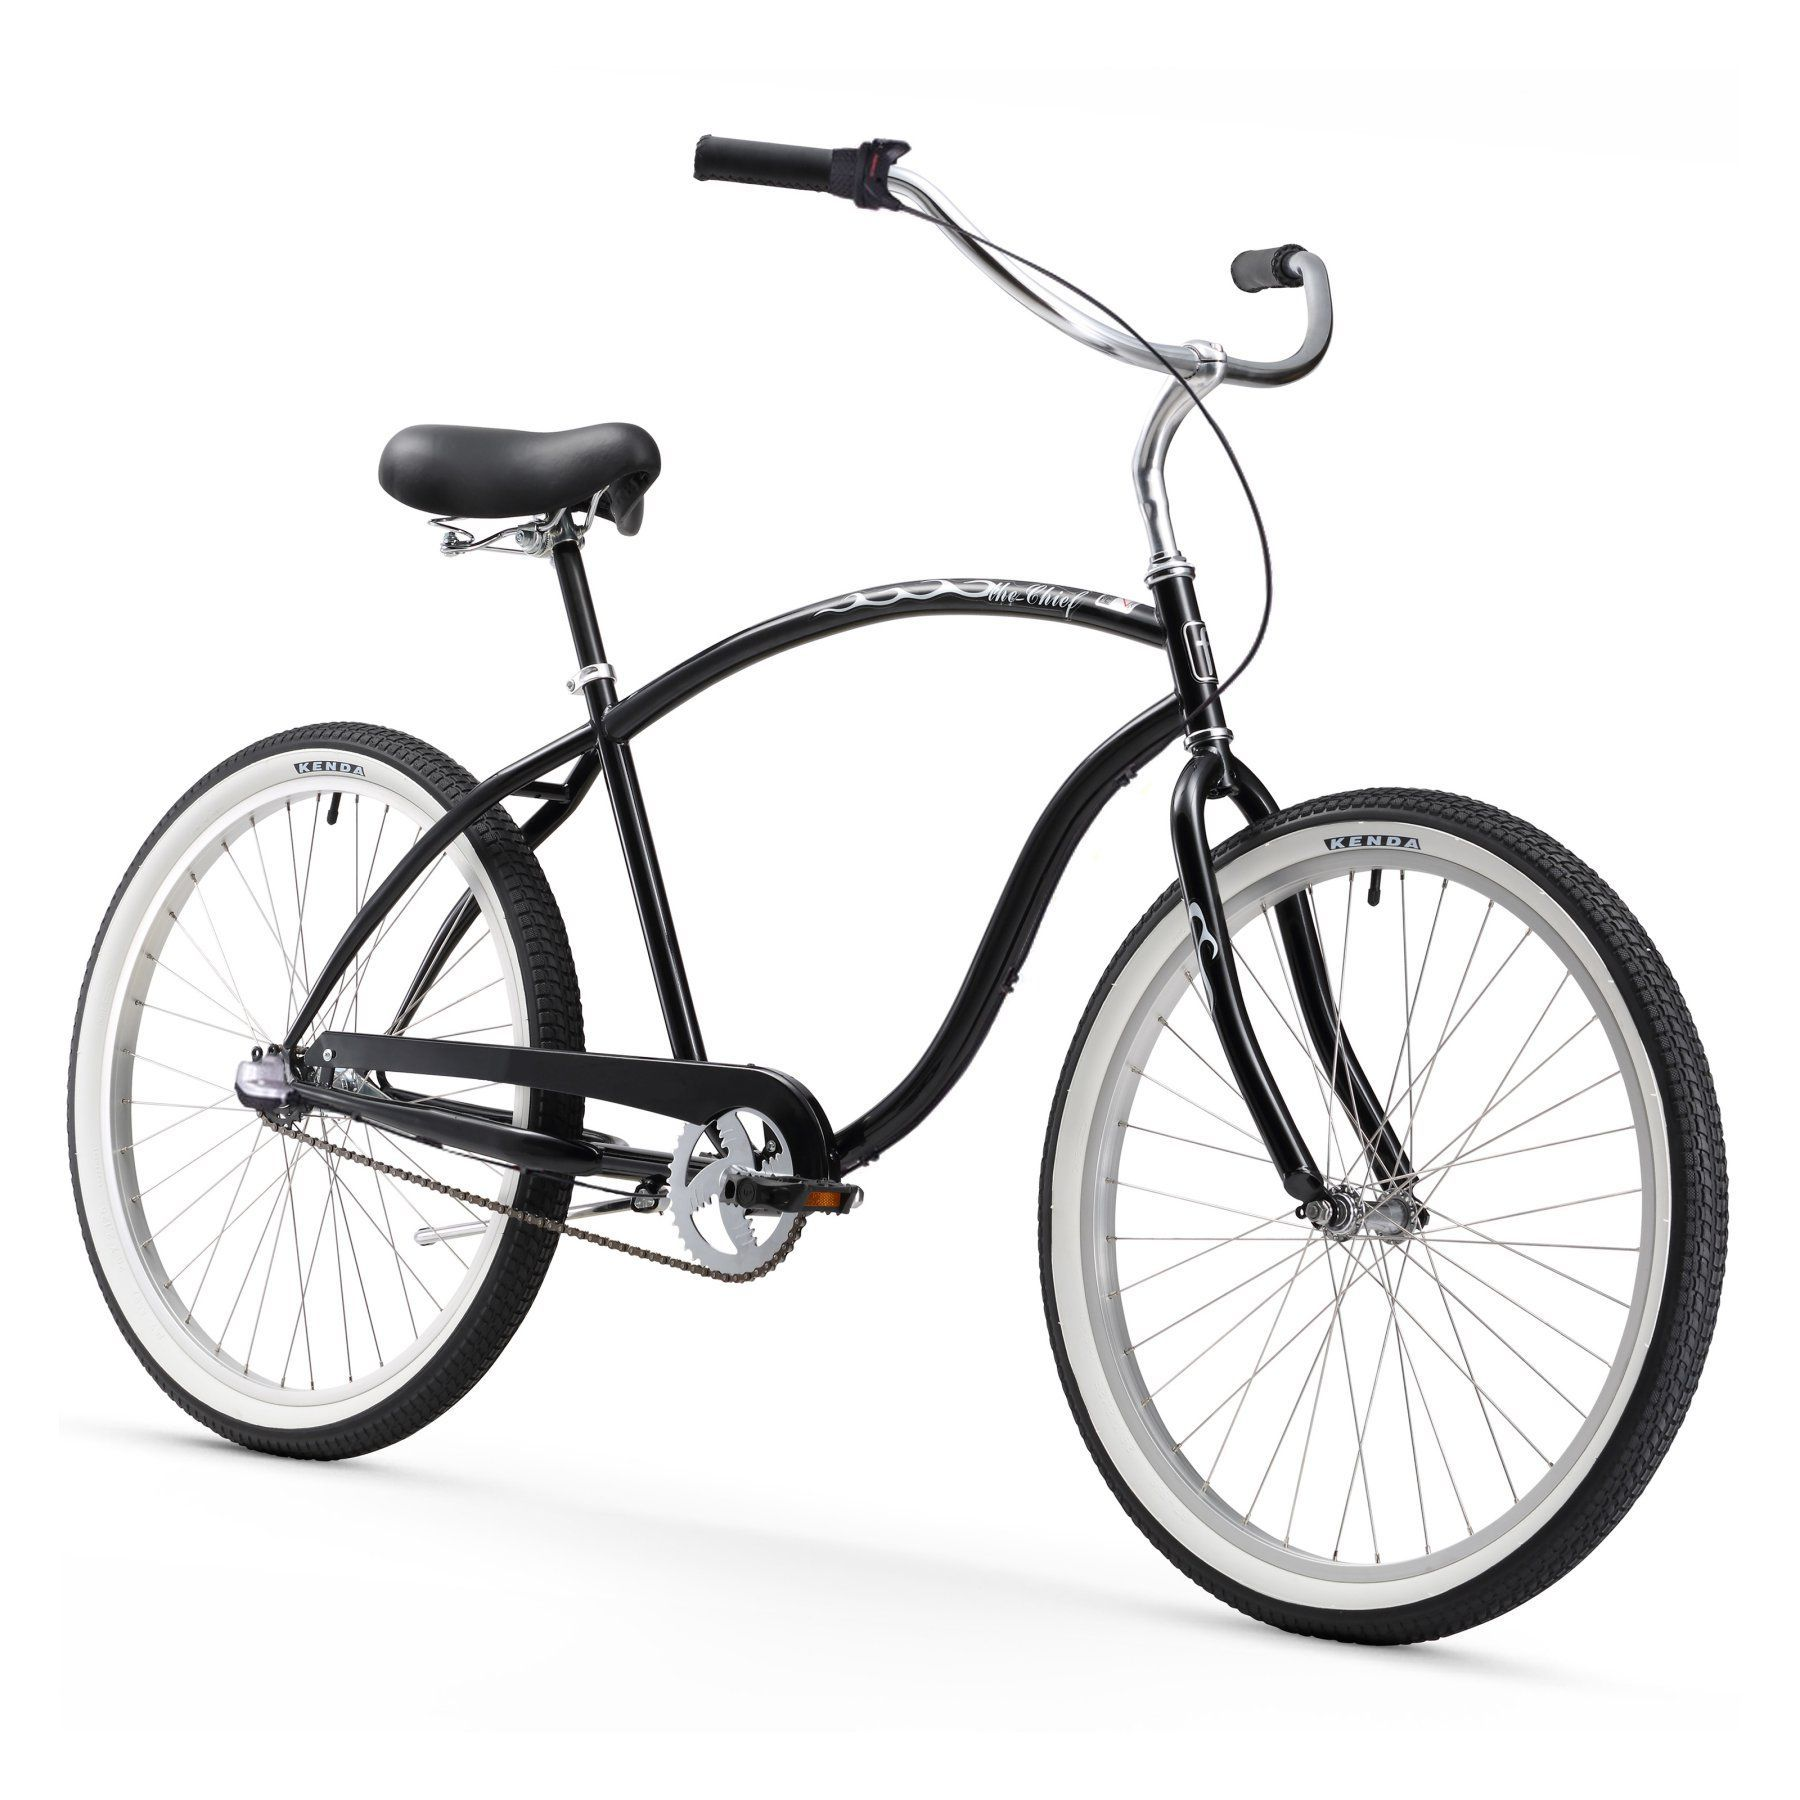 Chief Man 26 in. 3 Speed Beach Cruiser Bicycle - 15182